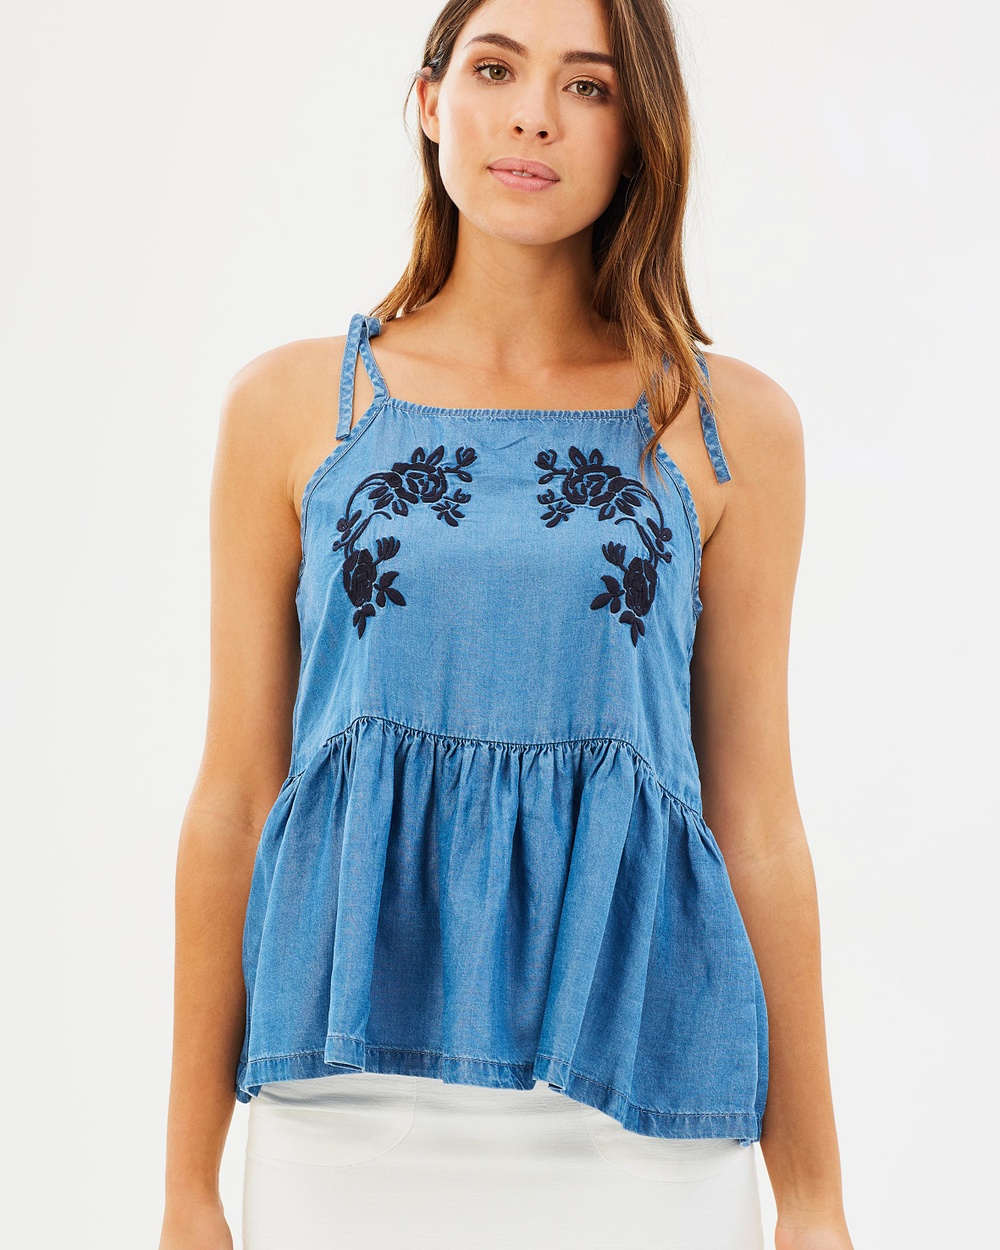 ONLY Stella Embroidery Denim Top Tops Medium Blue Denim Stella Embroidery Denim Top